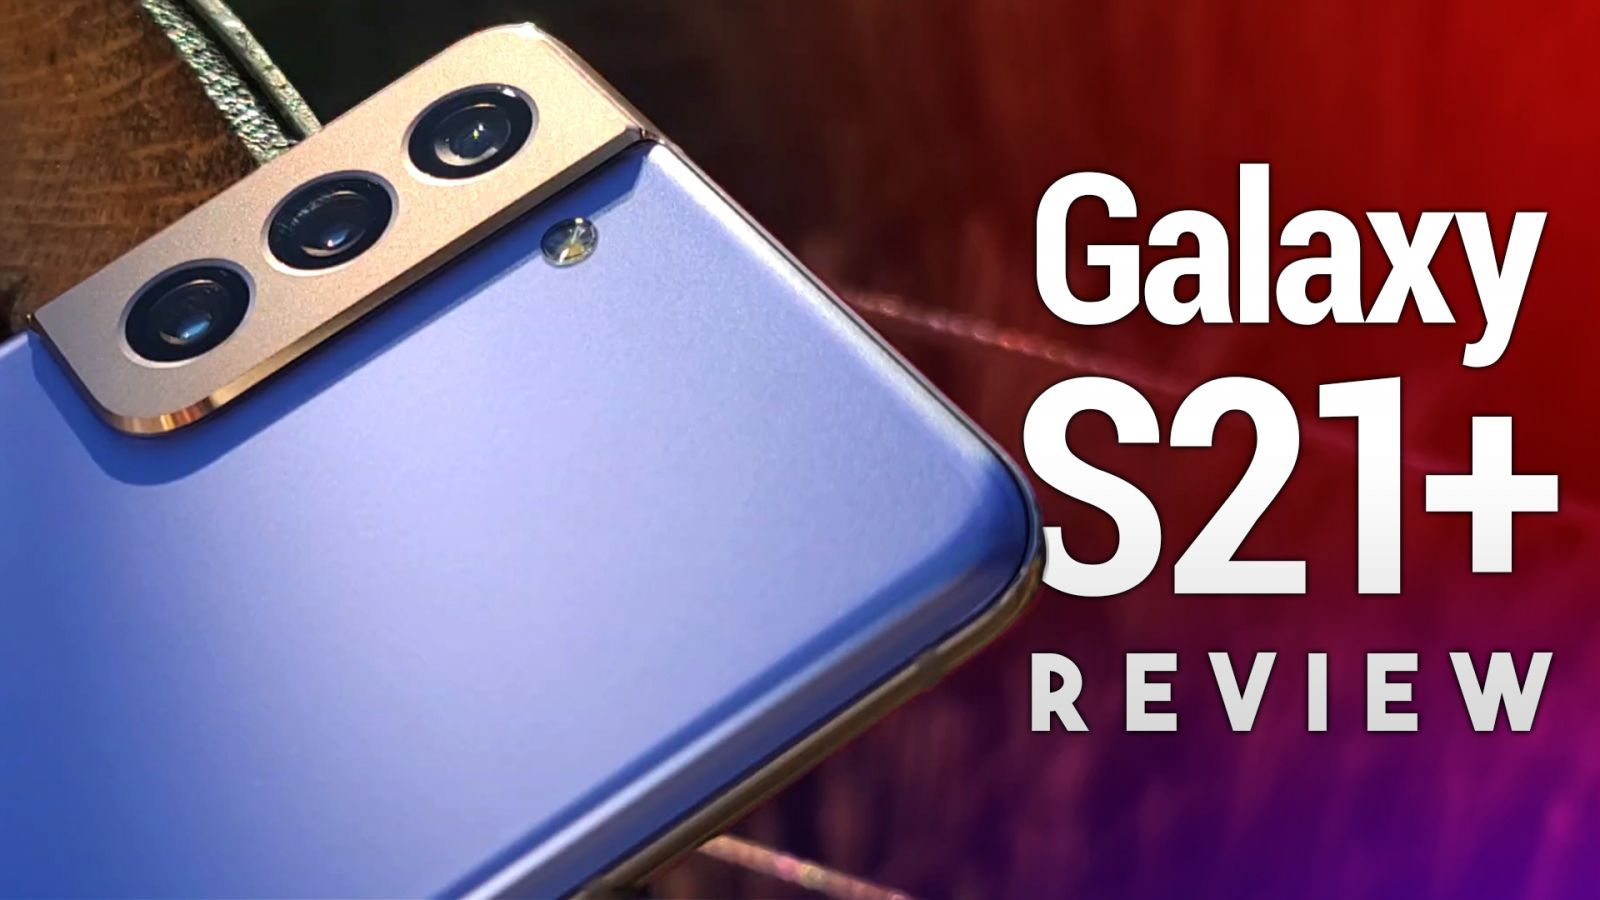 Samsung Galaxy S21+ Review - Worth the Trade-Offs?